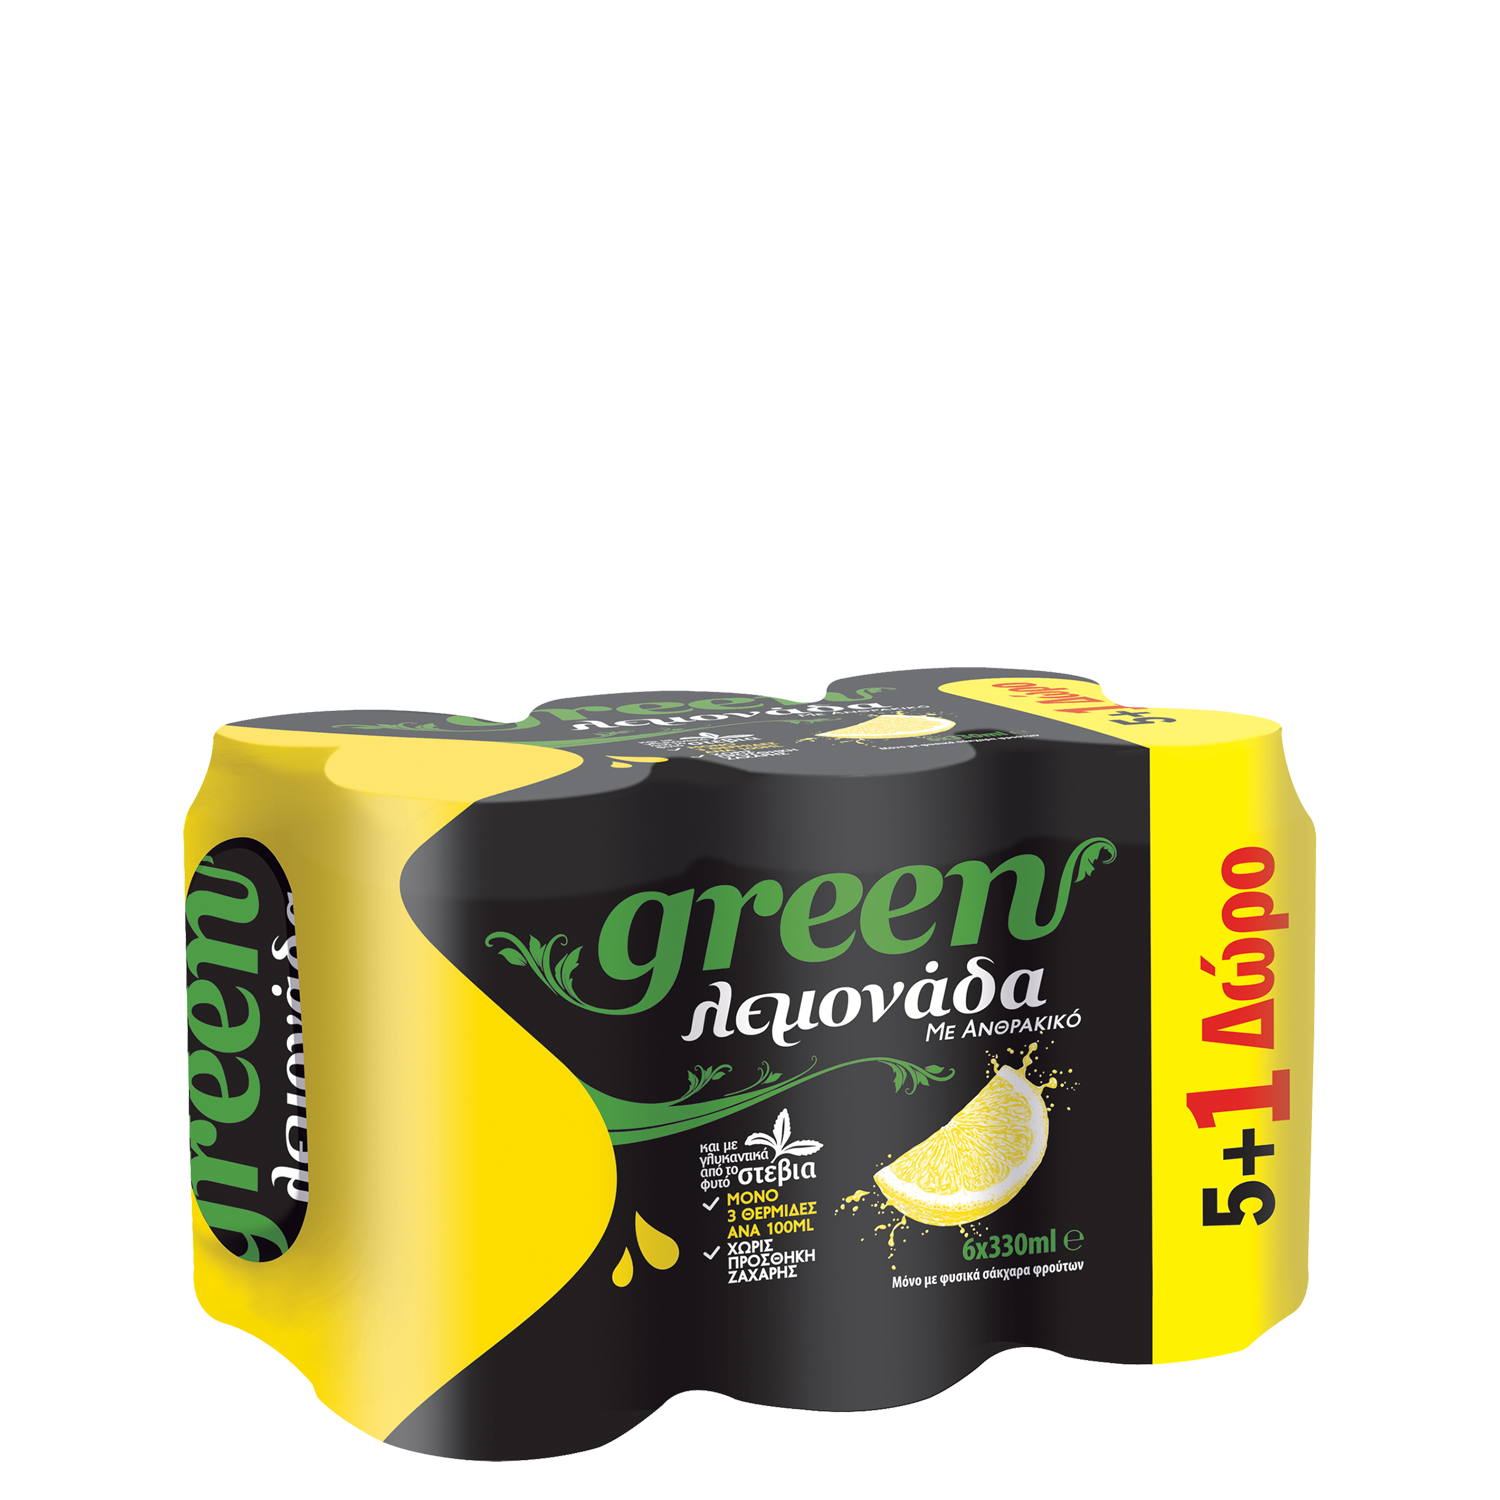 Green Lemon - Multi Pack - (6x330ml cans)